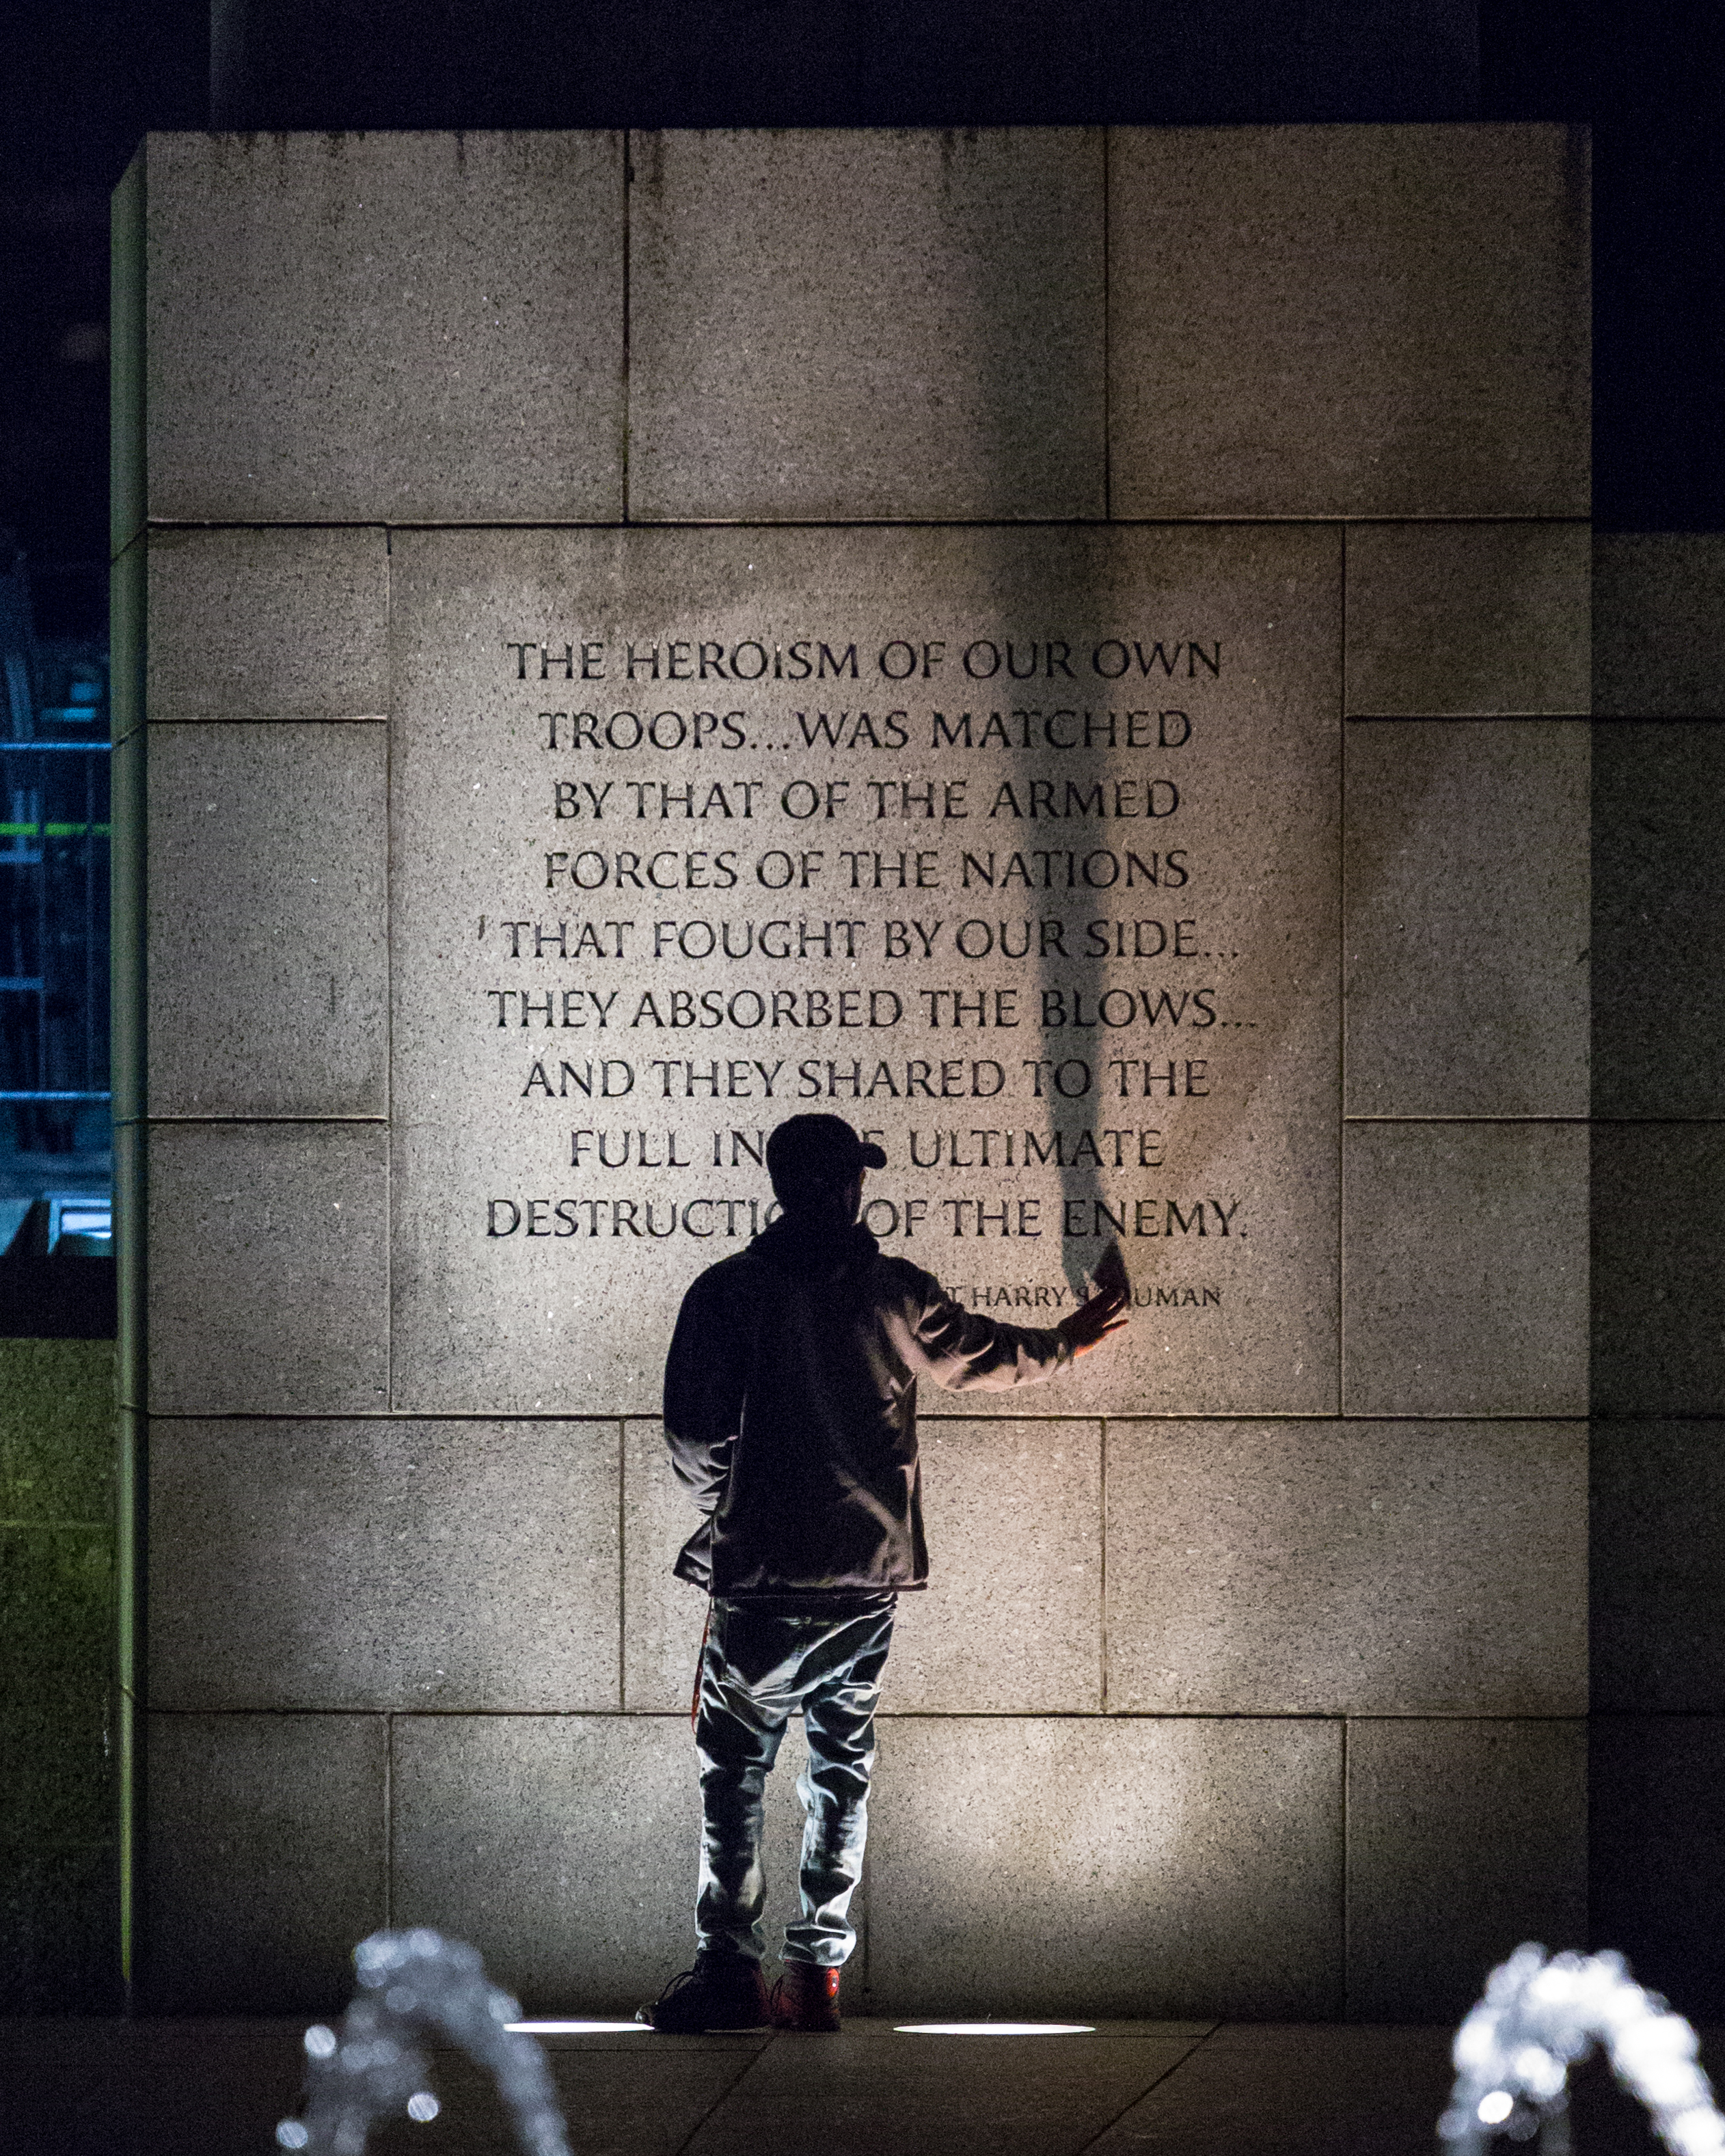 Bildquelle: https://commons.wikimedia.org/wiki/File:Touching_History_at_the_World_War_II_Memorial.jpg